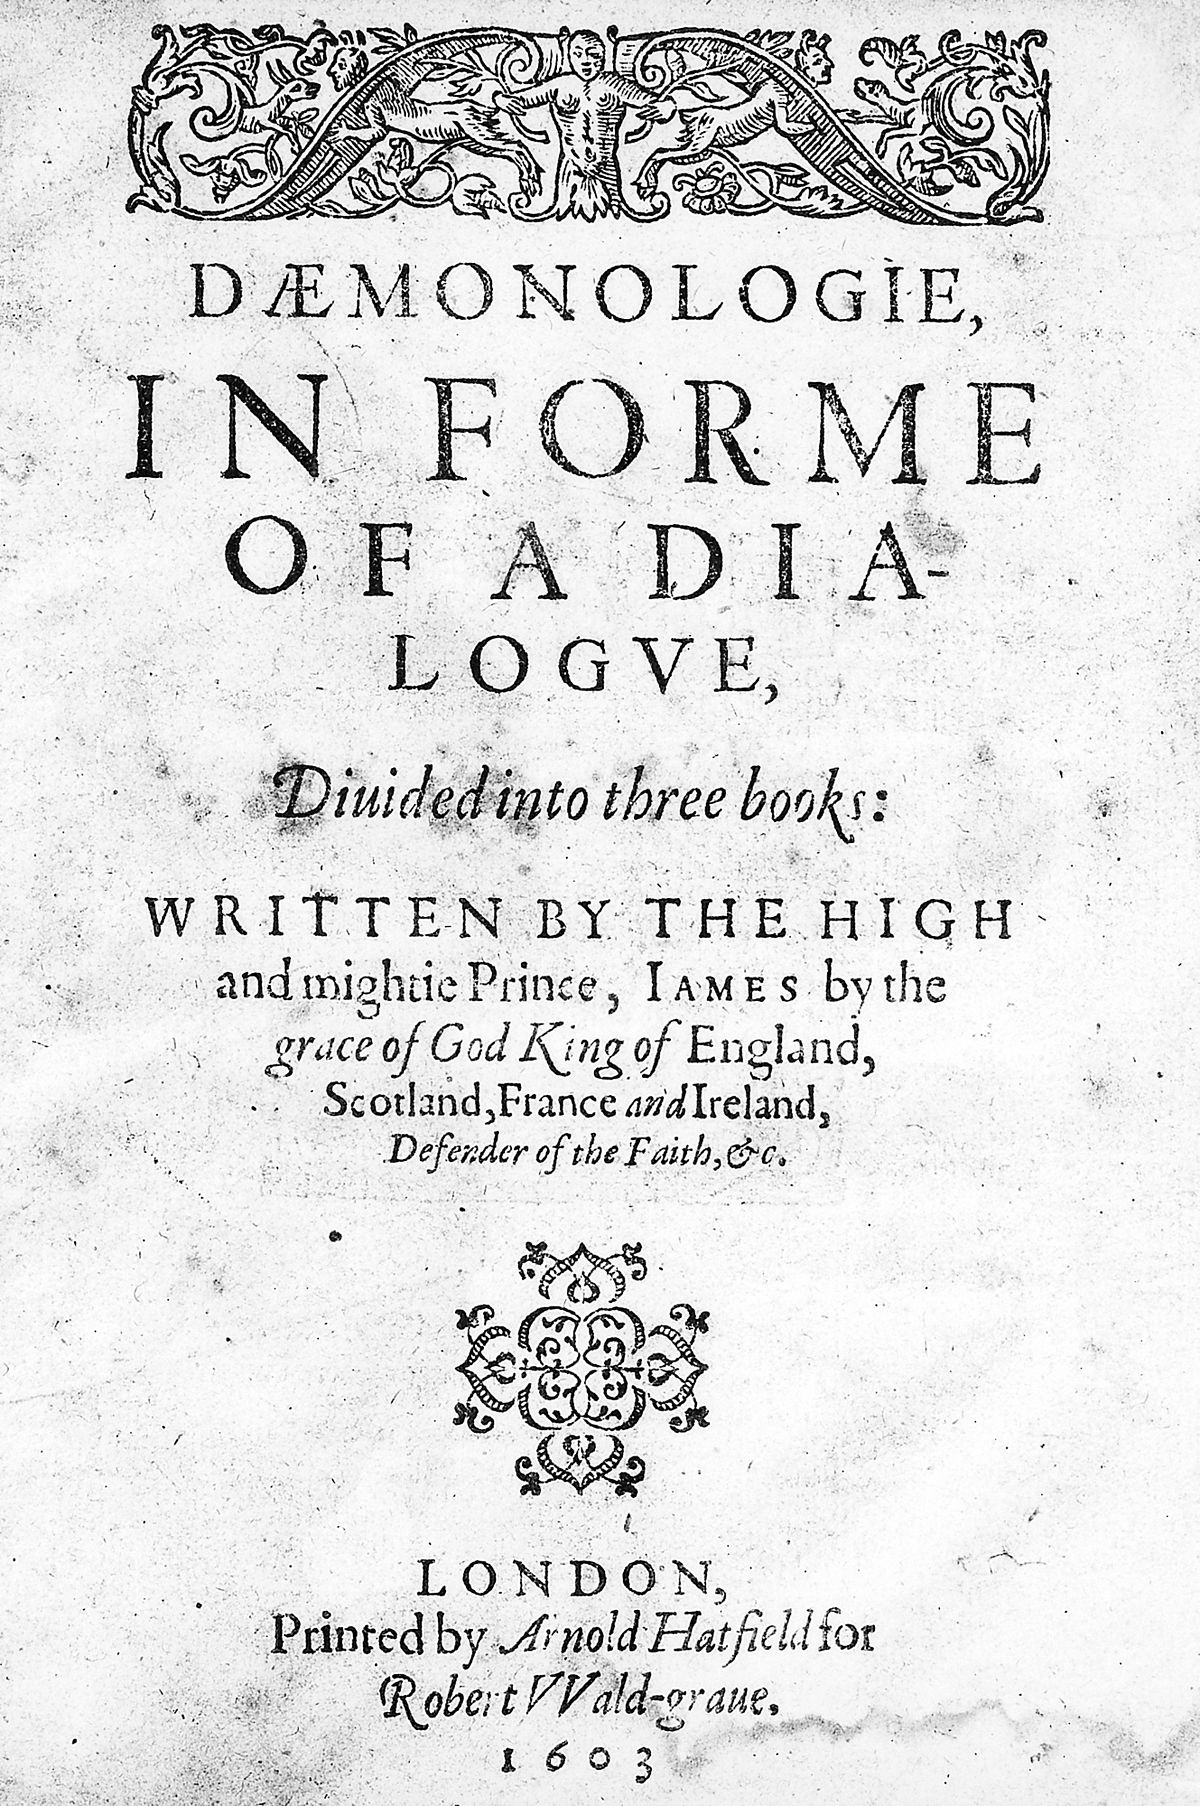 The 1603 title page of King James I's text on witchcraft and demonology.